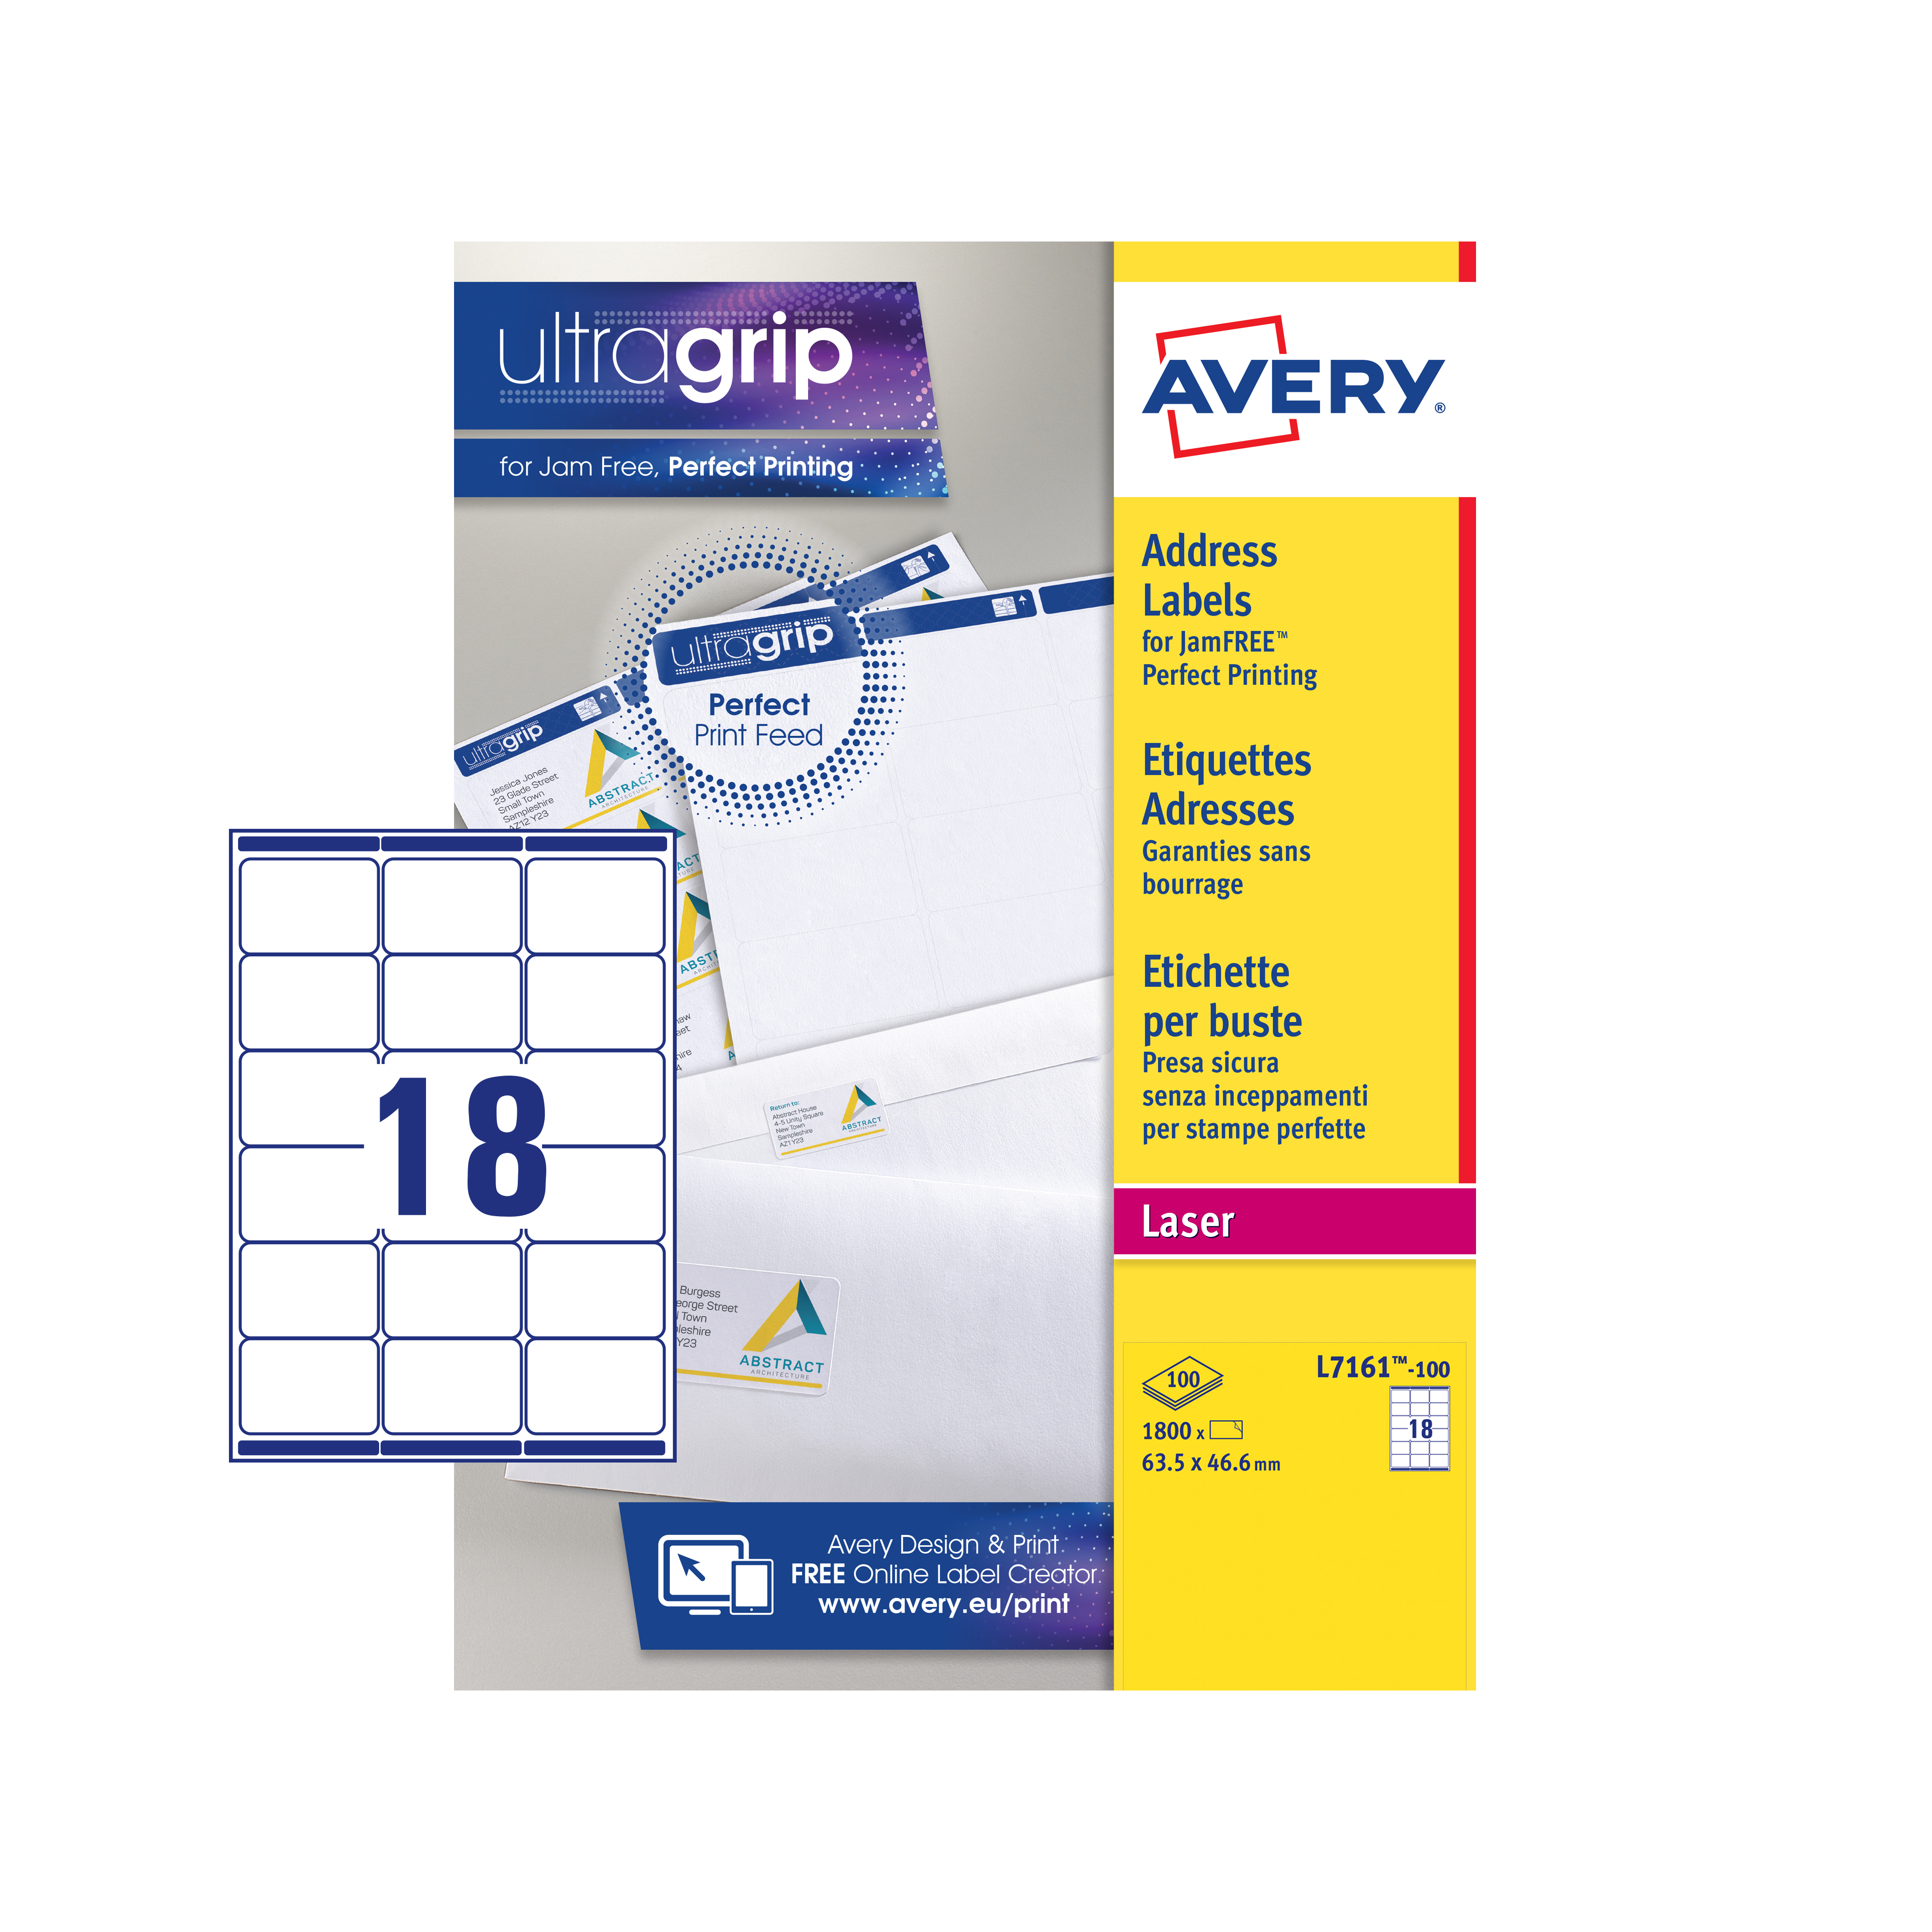 avery addressing labels laser jam free 18 per sheet 635x466mm white ref l7161 100 1800 labels